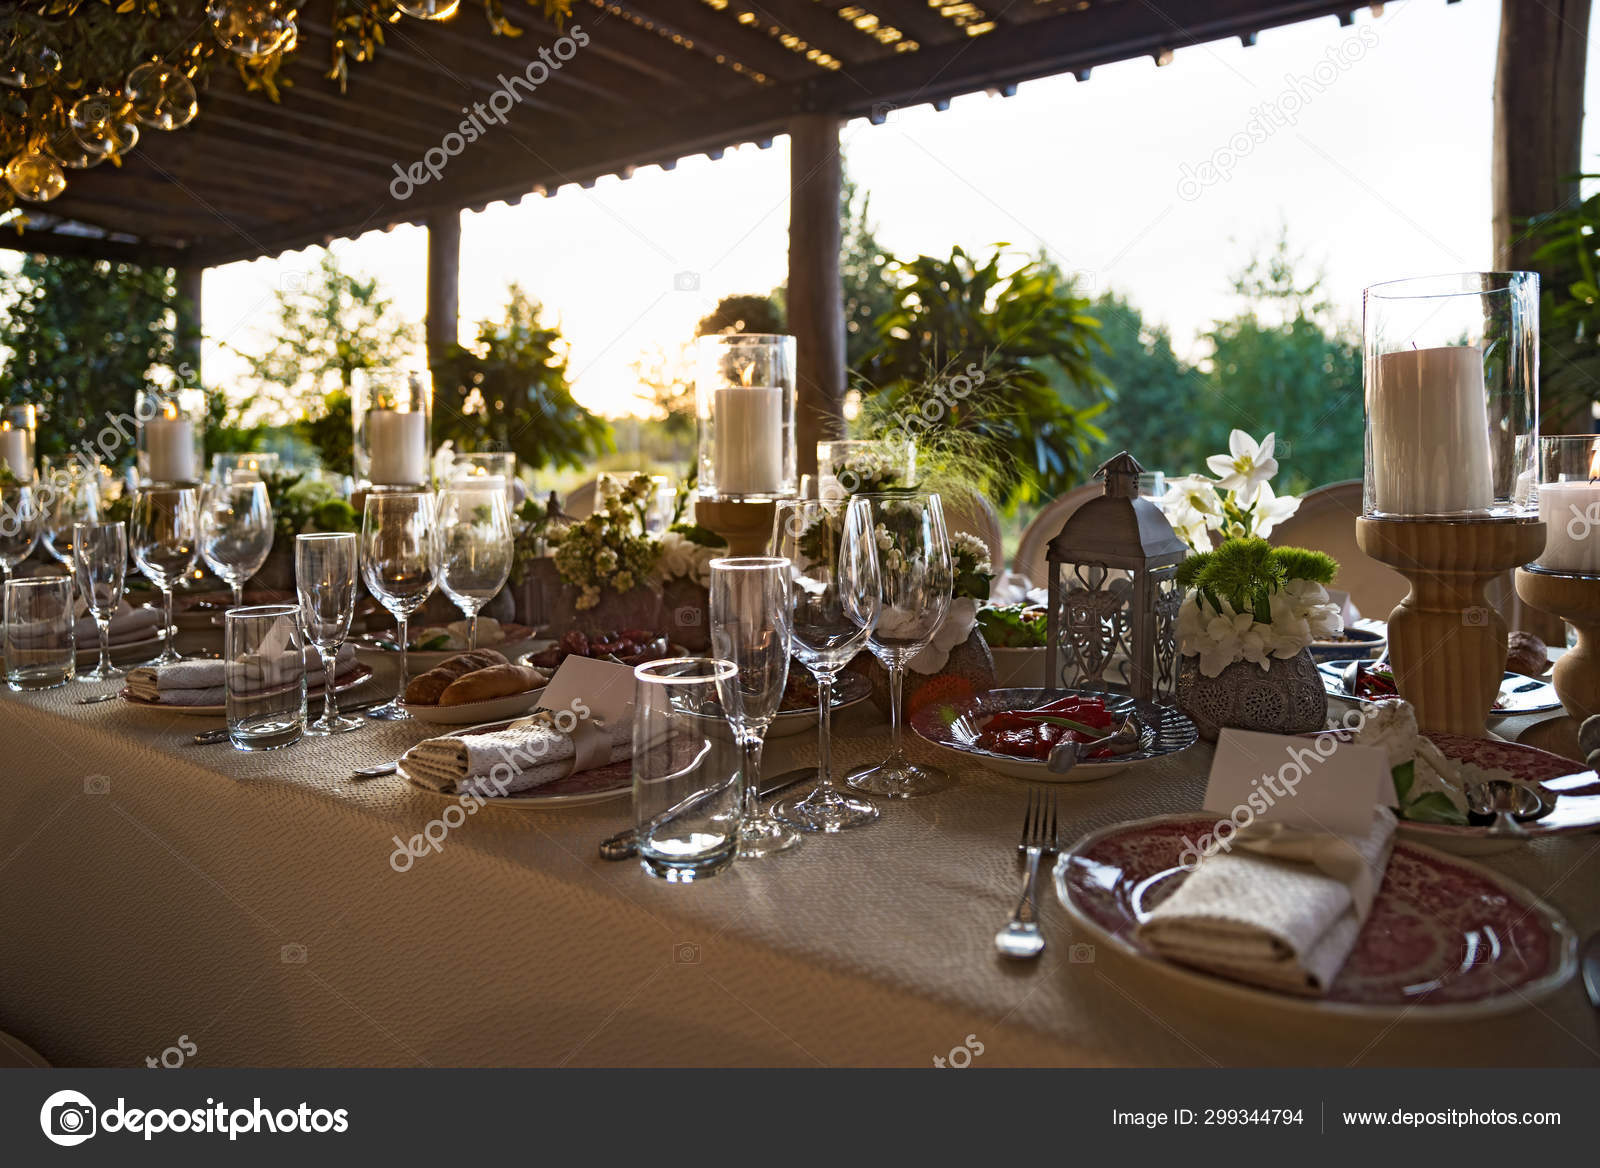 Outdoor Wedding Celebration At A Restaurant Festive Table Setting Catering Wedding In Rustic Style In Summer Beautiful Small Bouquets On A Table Stock Photo C Izik Md 299344794